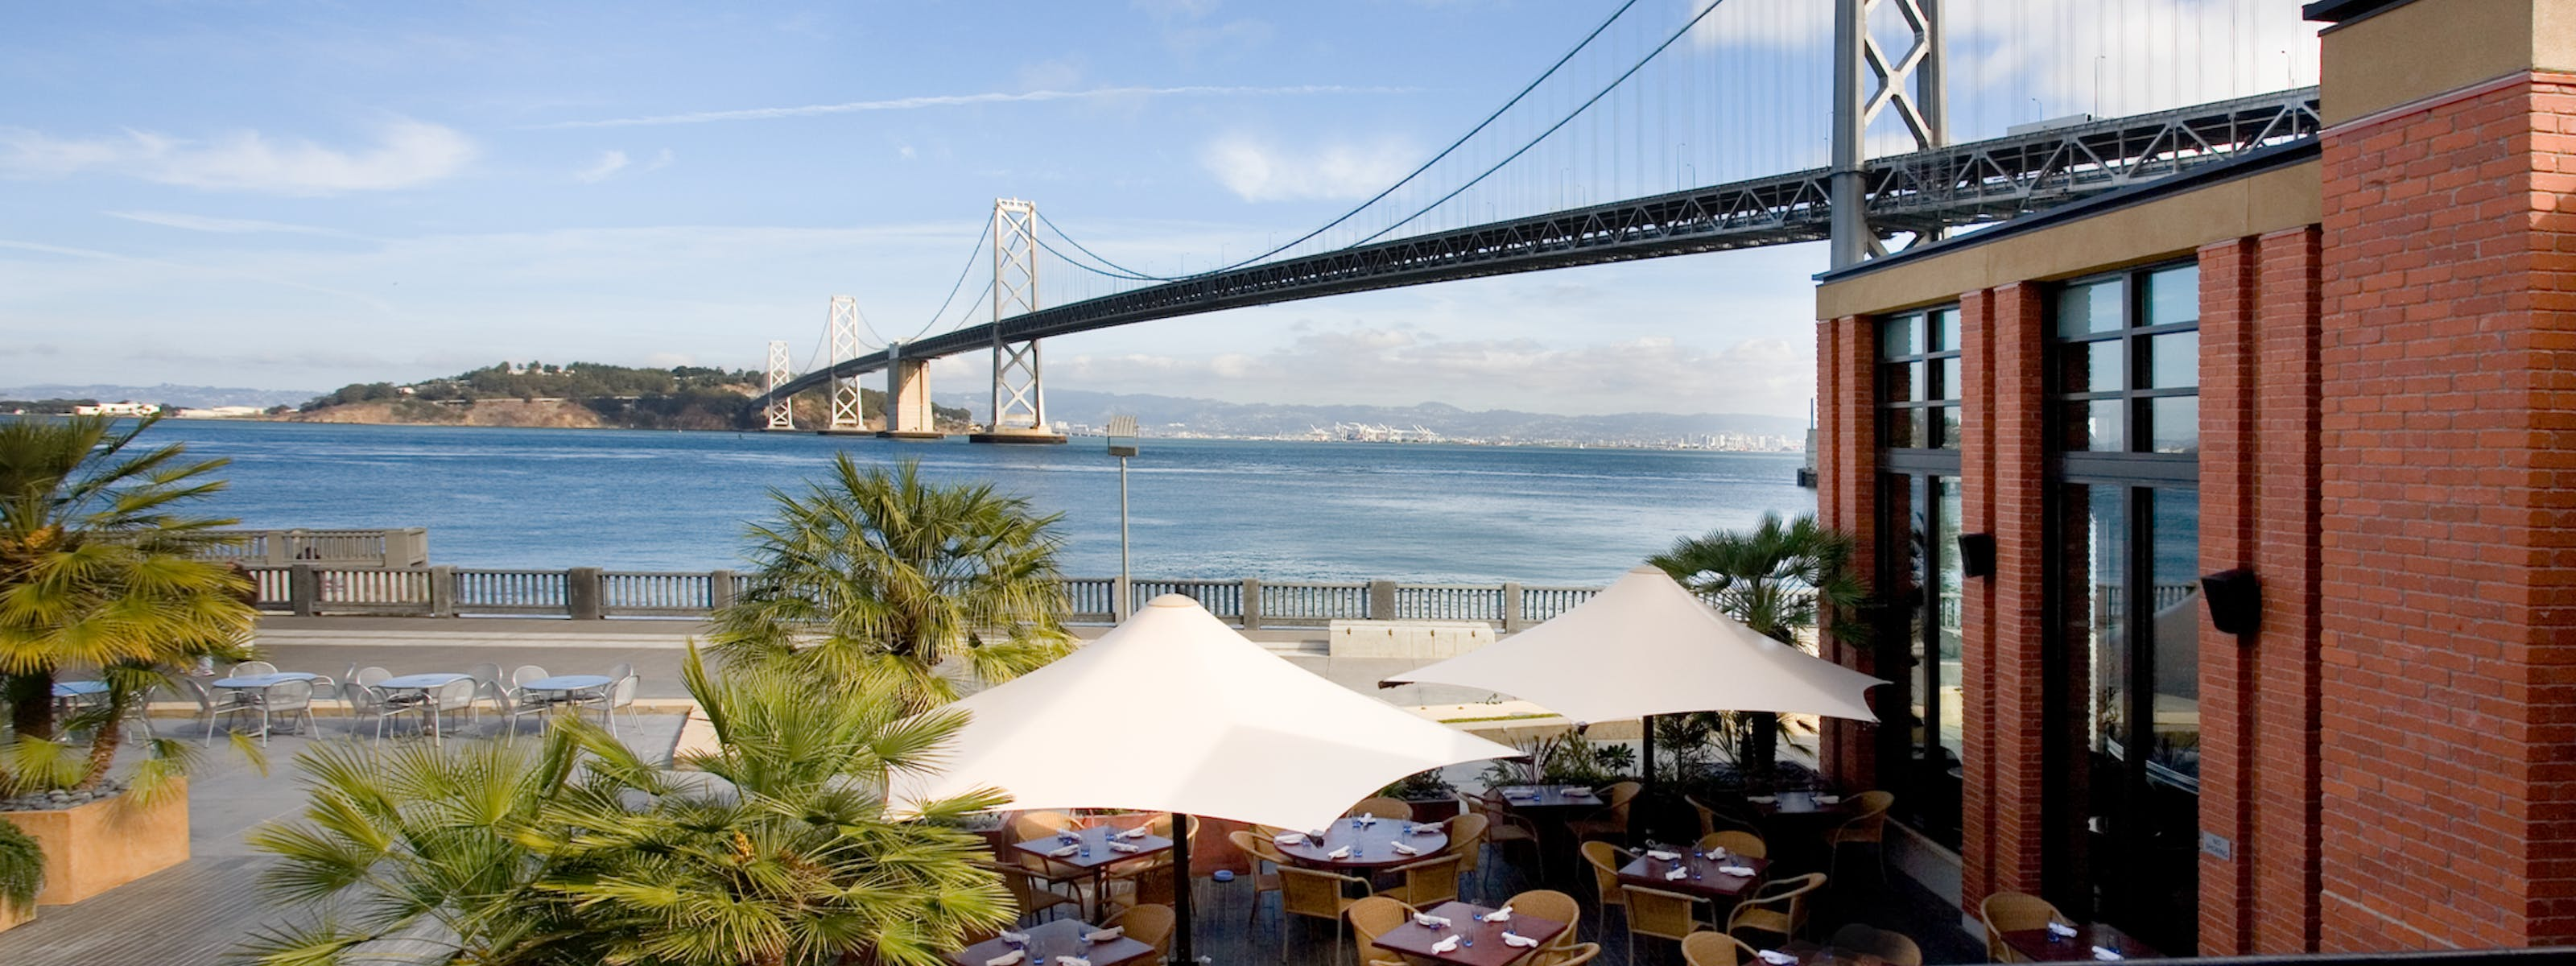 SF Waterfront Restaurants With Outdoor Seating - San Francisco - The Infatuation